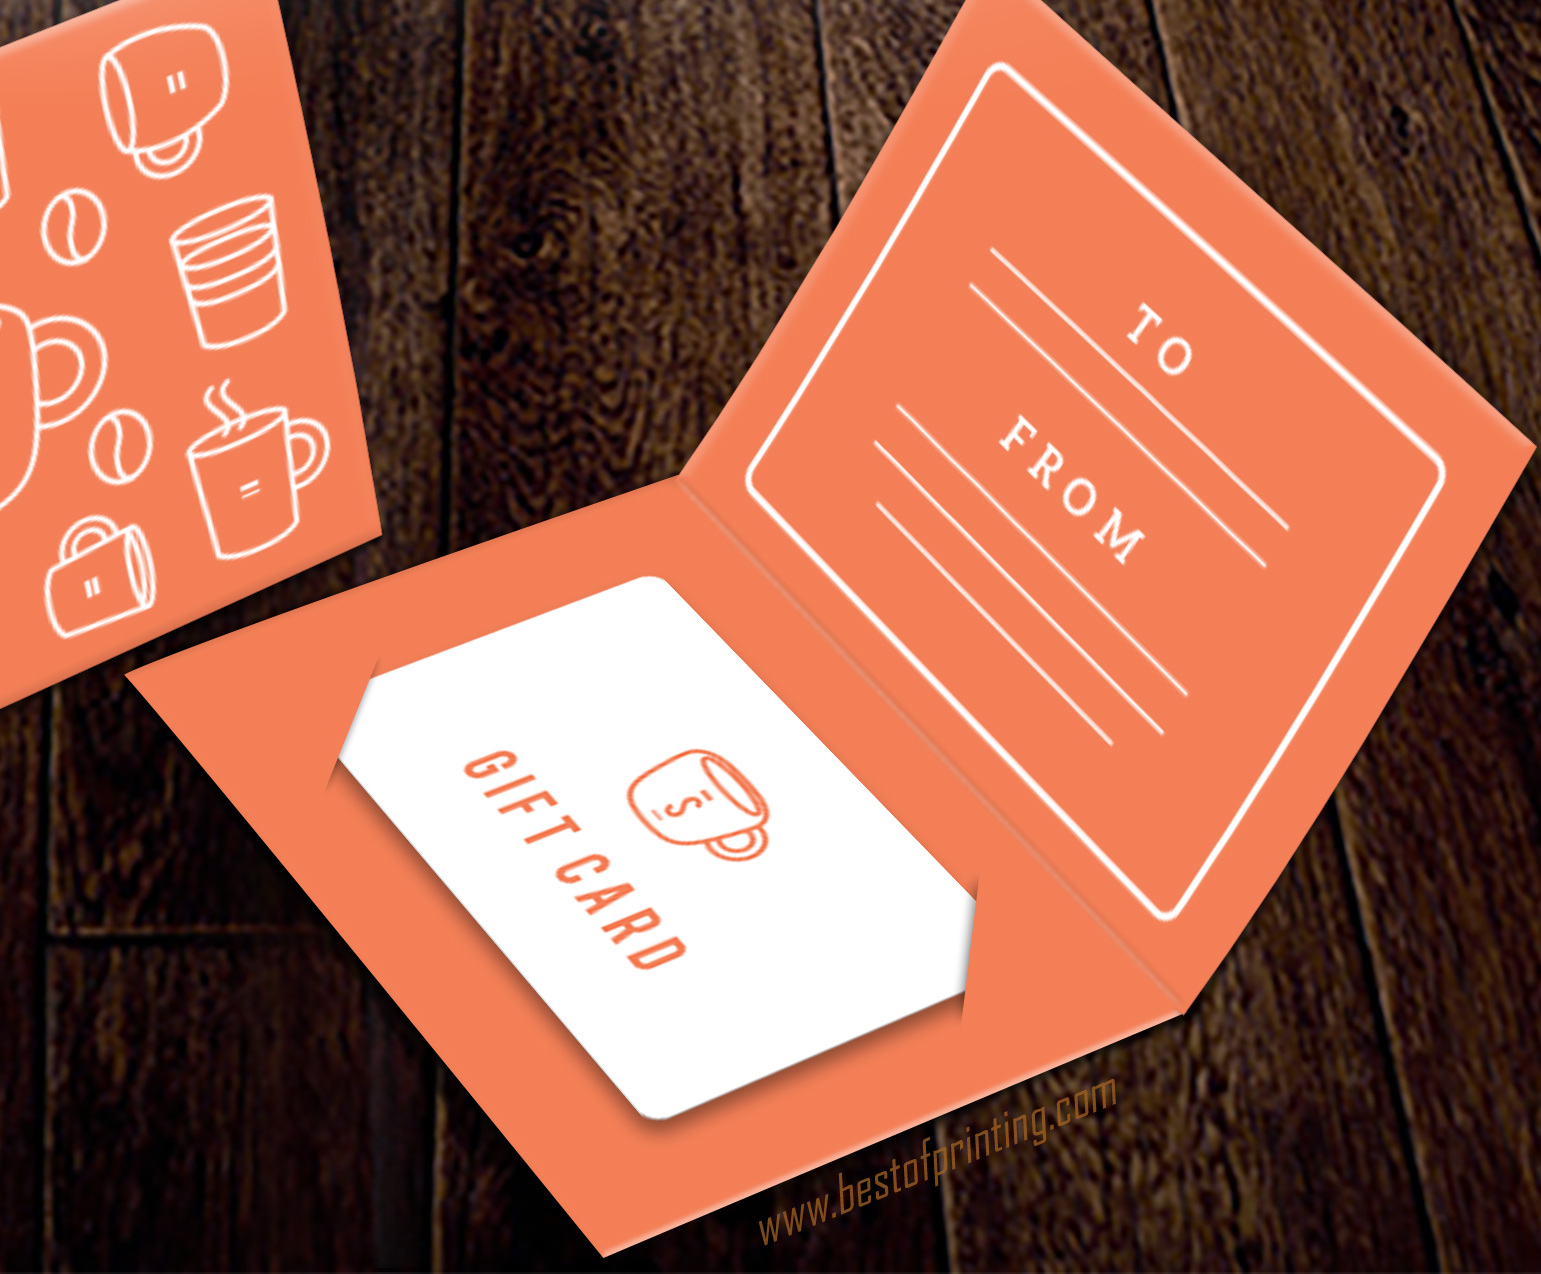 Gift Certificate Printing Services | Gift Cards - BestOfPrinting NYC